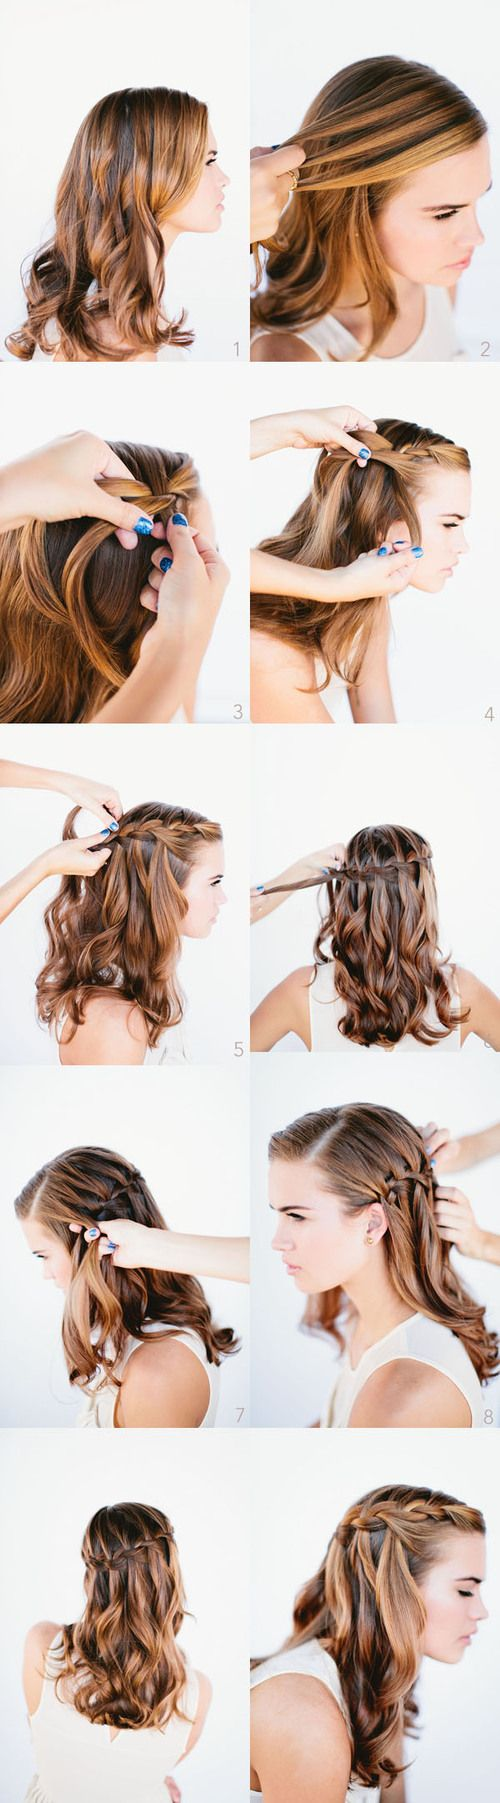 How to: WaterFall Braid id like to have this done sometime for a special occasion